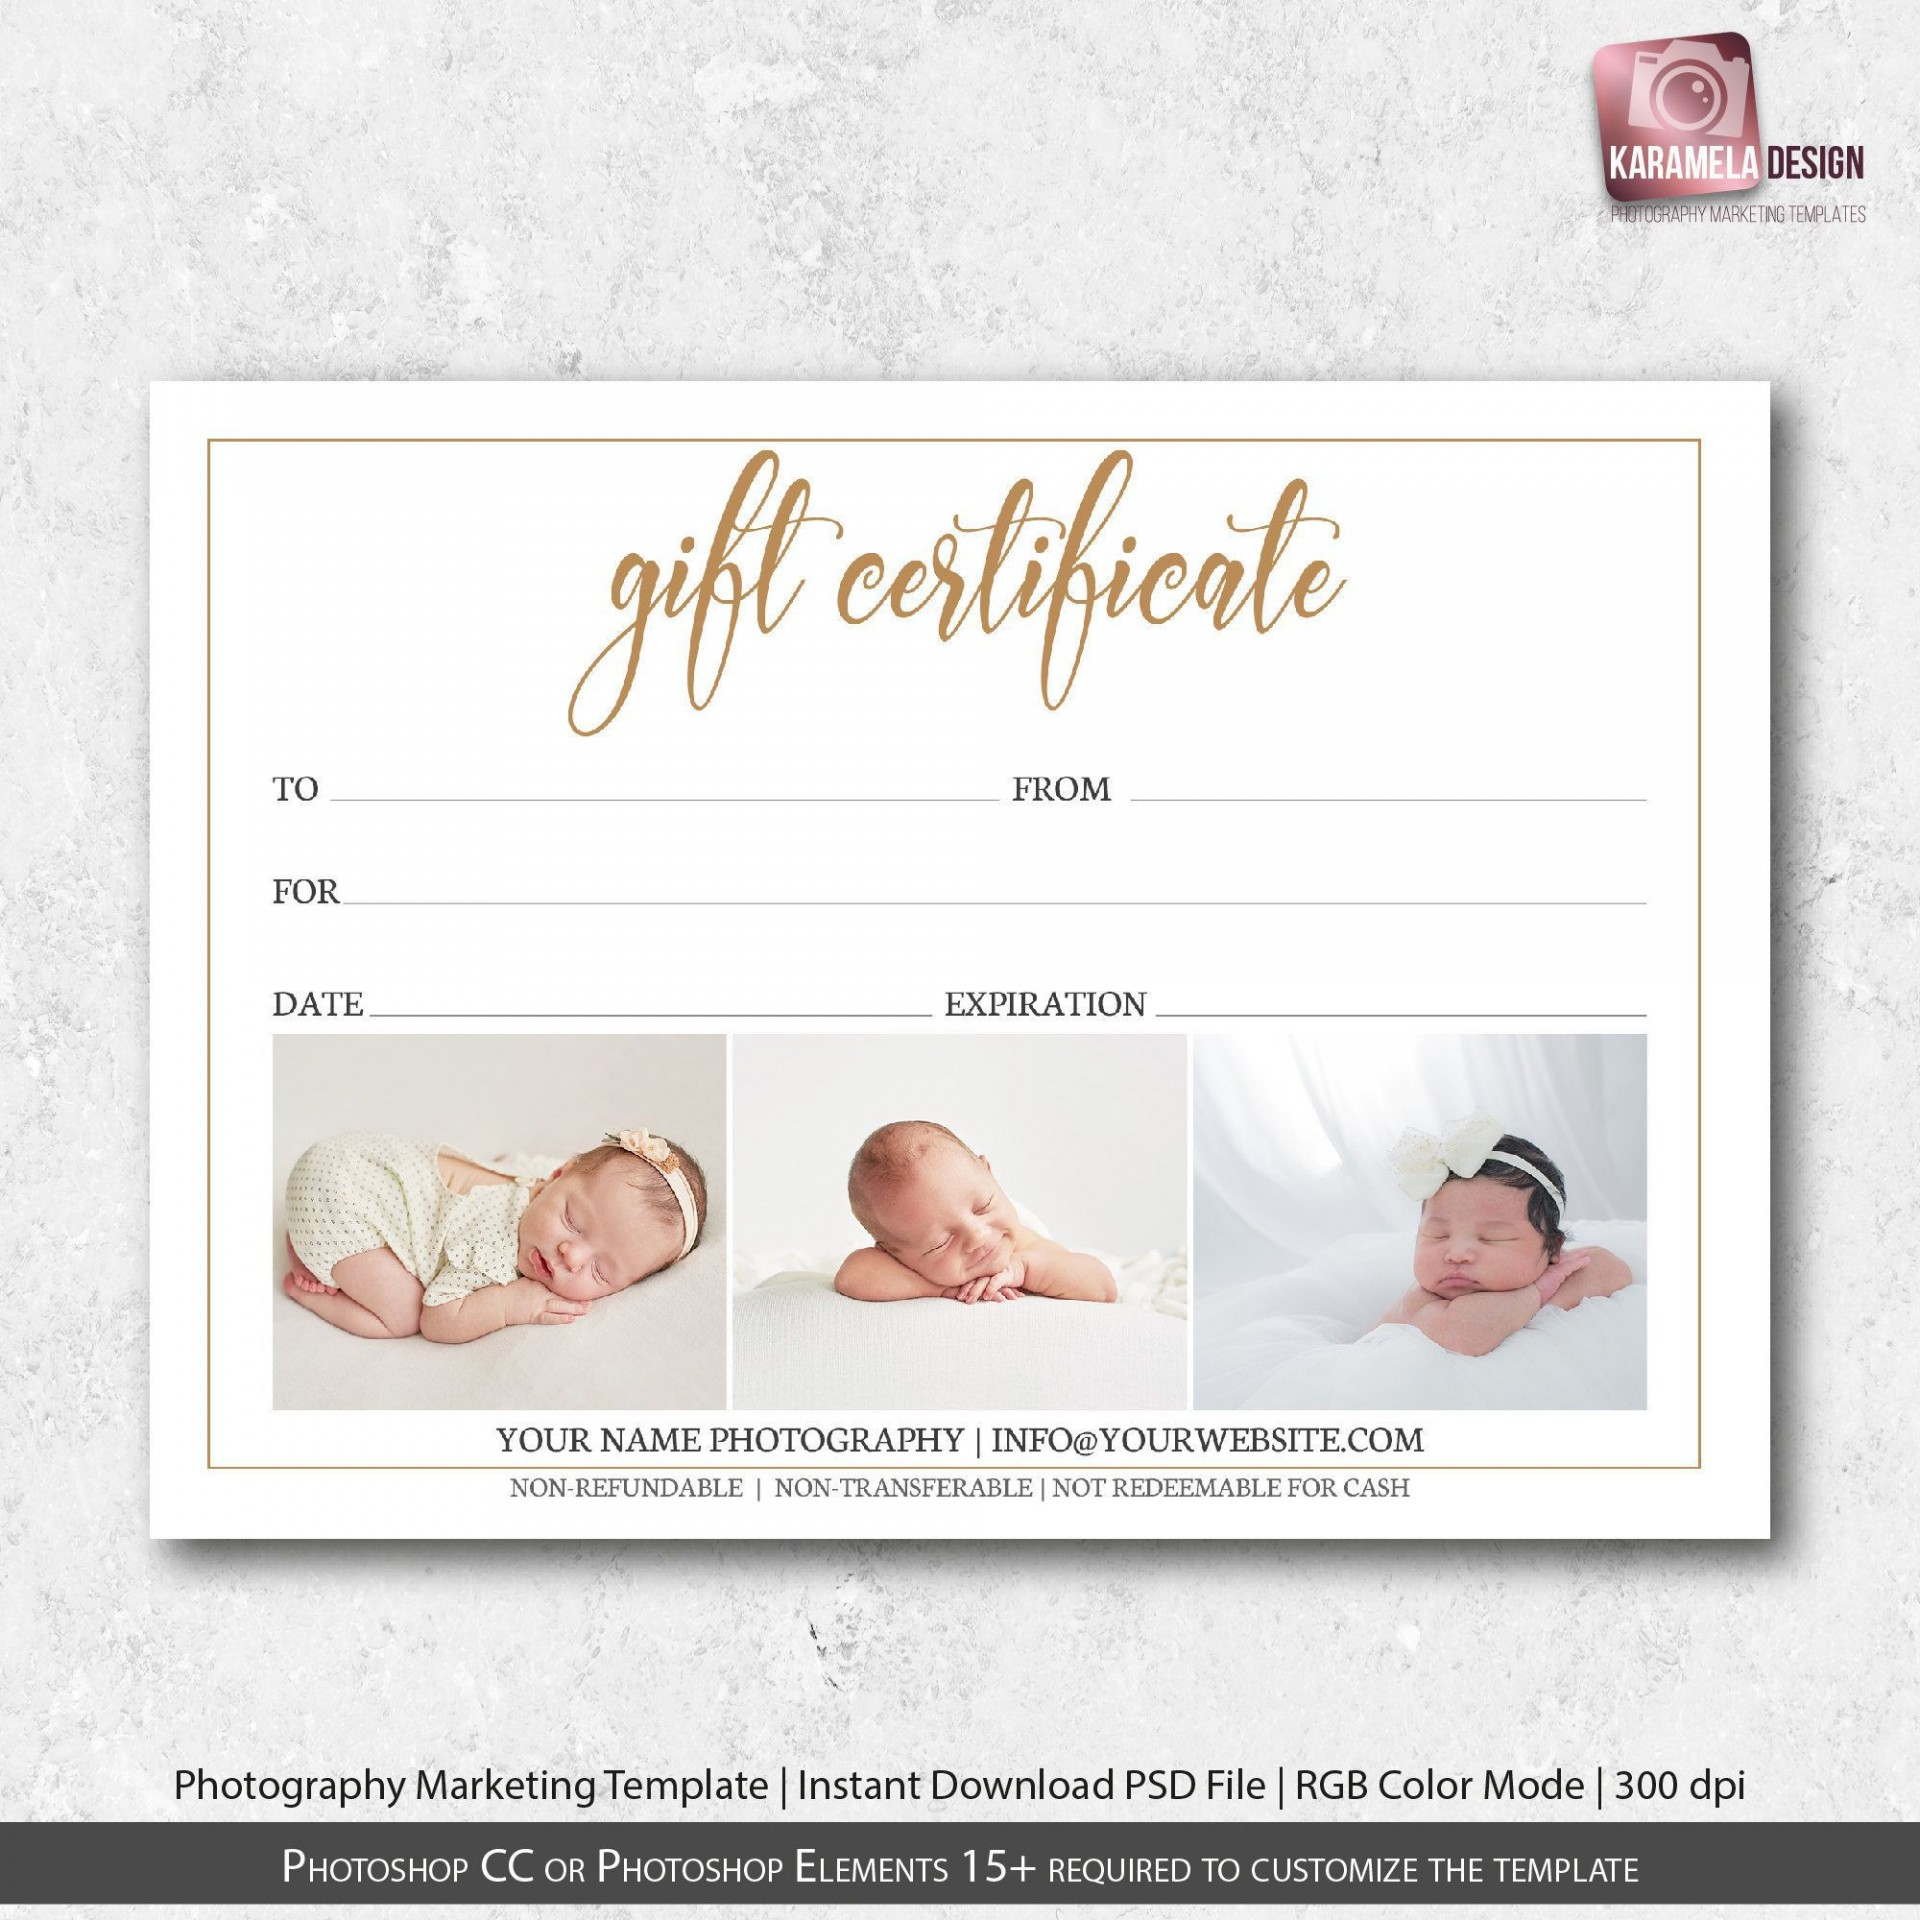 000 Beautiful Photography Gift Certificate Template Photoshop Free Photo 1920